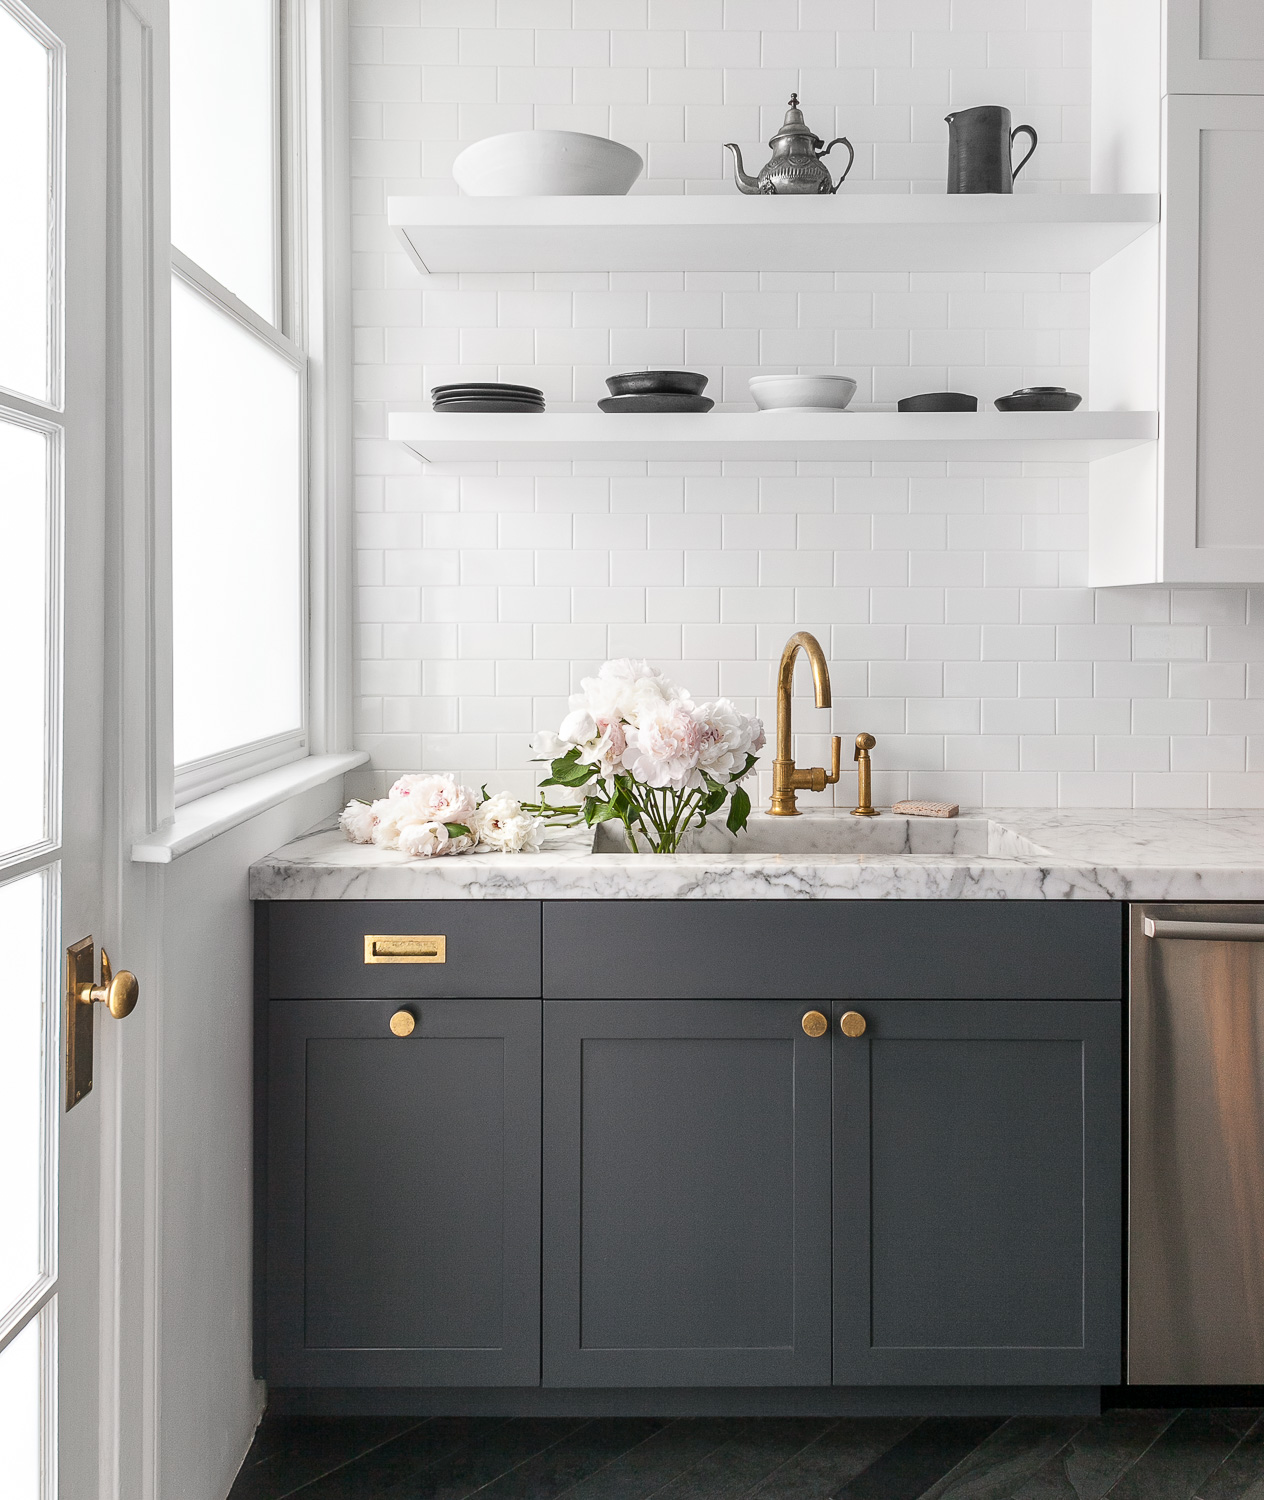 Kitchen by Grant K. Gibson at grantkgibson.com